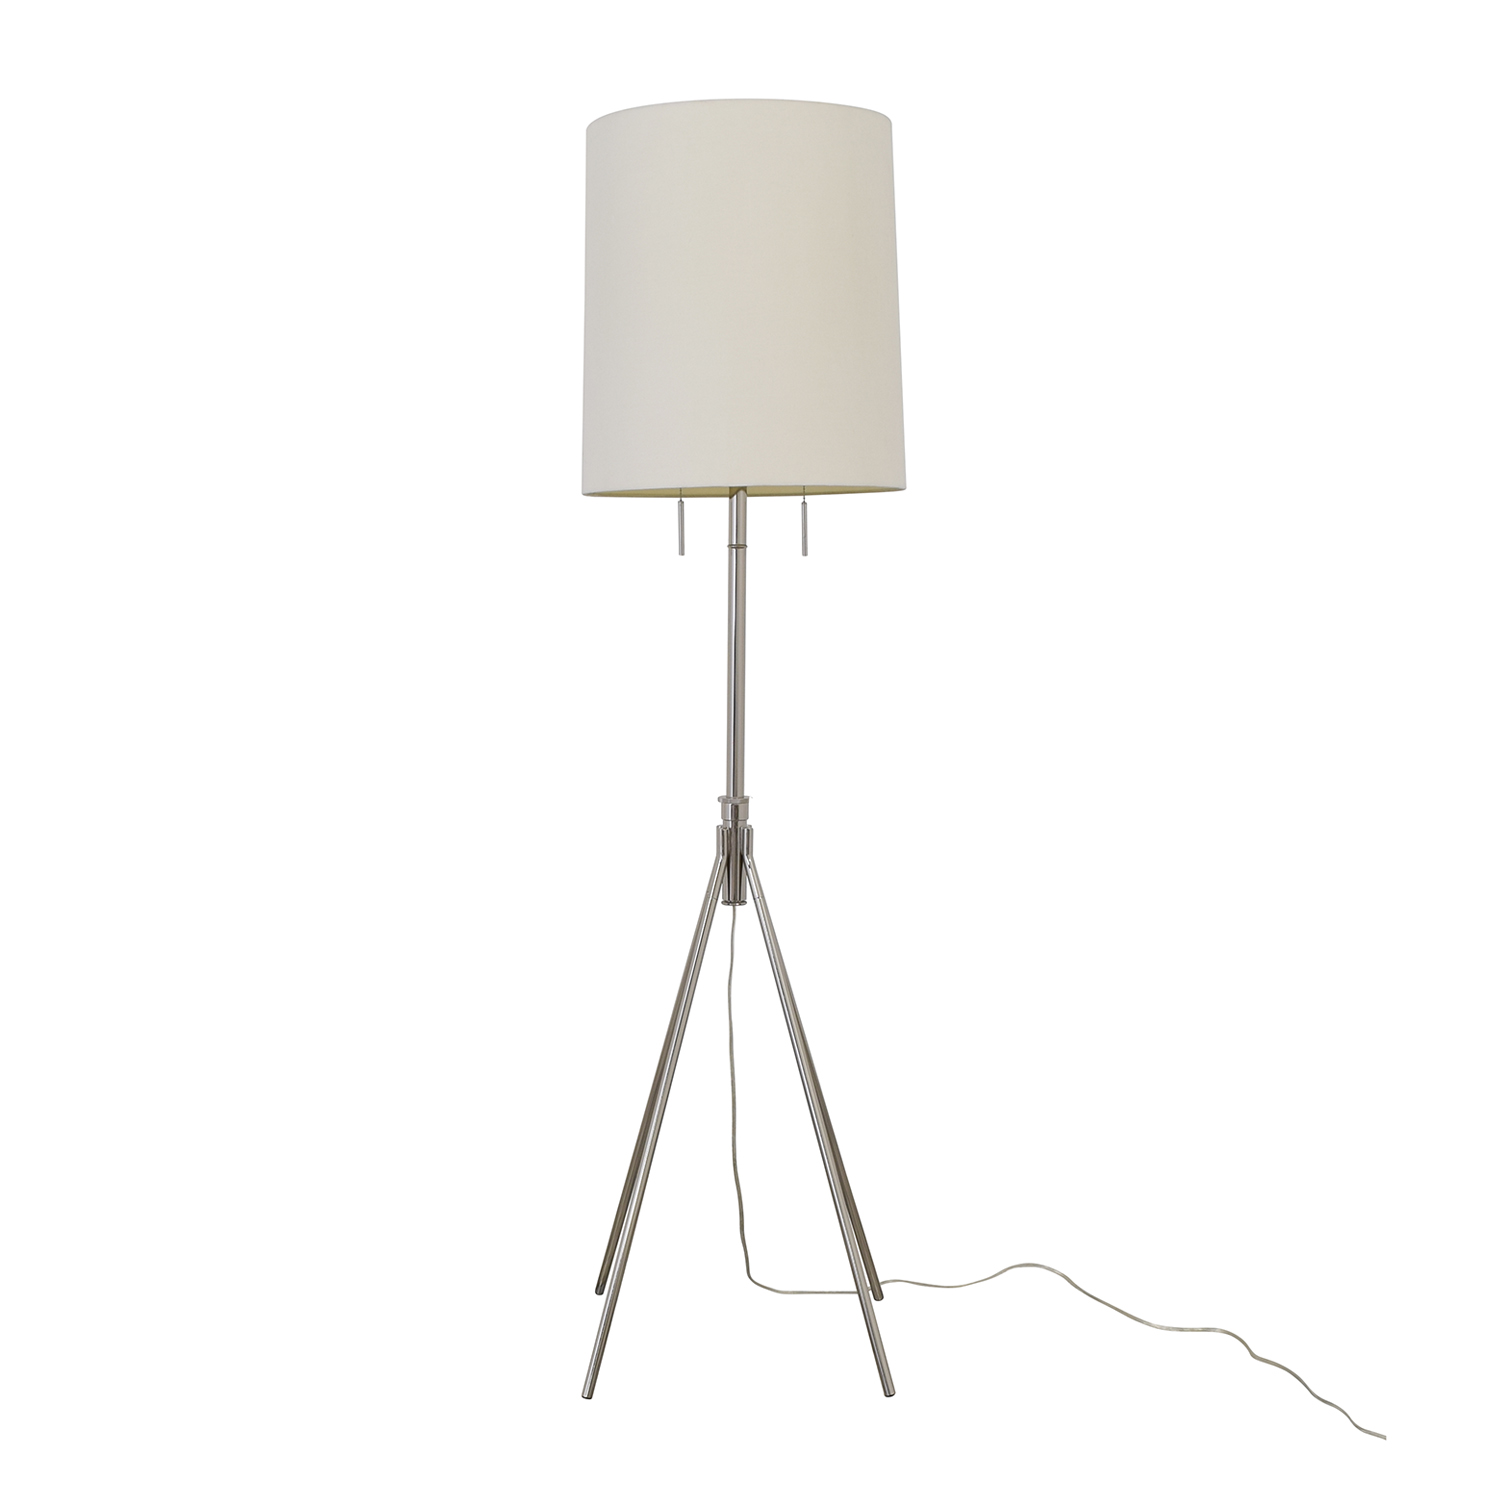 West Elm West Elm Tripod Floor Lamp price